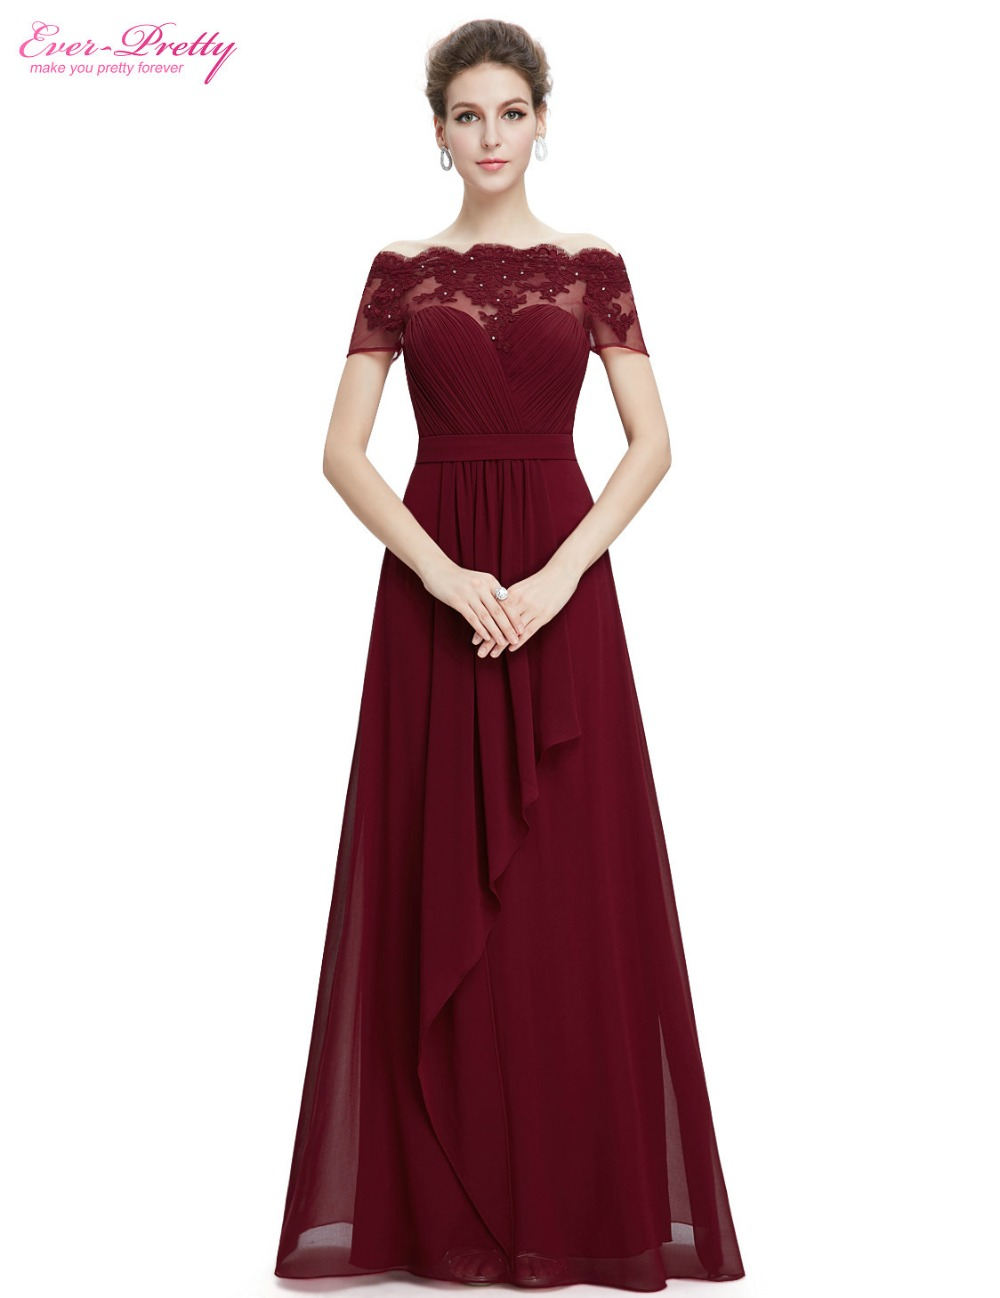 Clearance sale lace evening dresses ever pretty he08490 sexy boat clearance sale lace evening dresses ever pretty he08490 sexy boat neck short sleeves long formal evening party gowns 2017 in evening dresses from weddings junglespirit Images